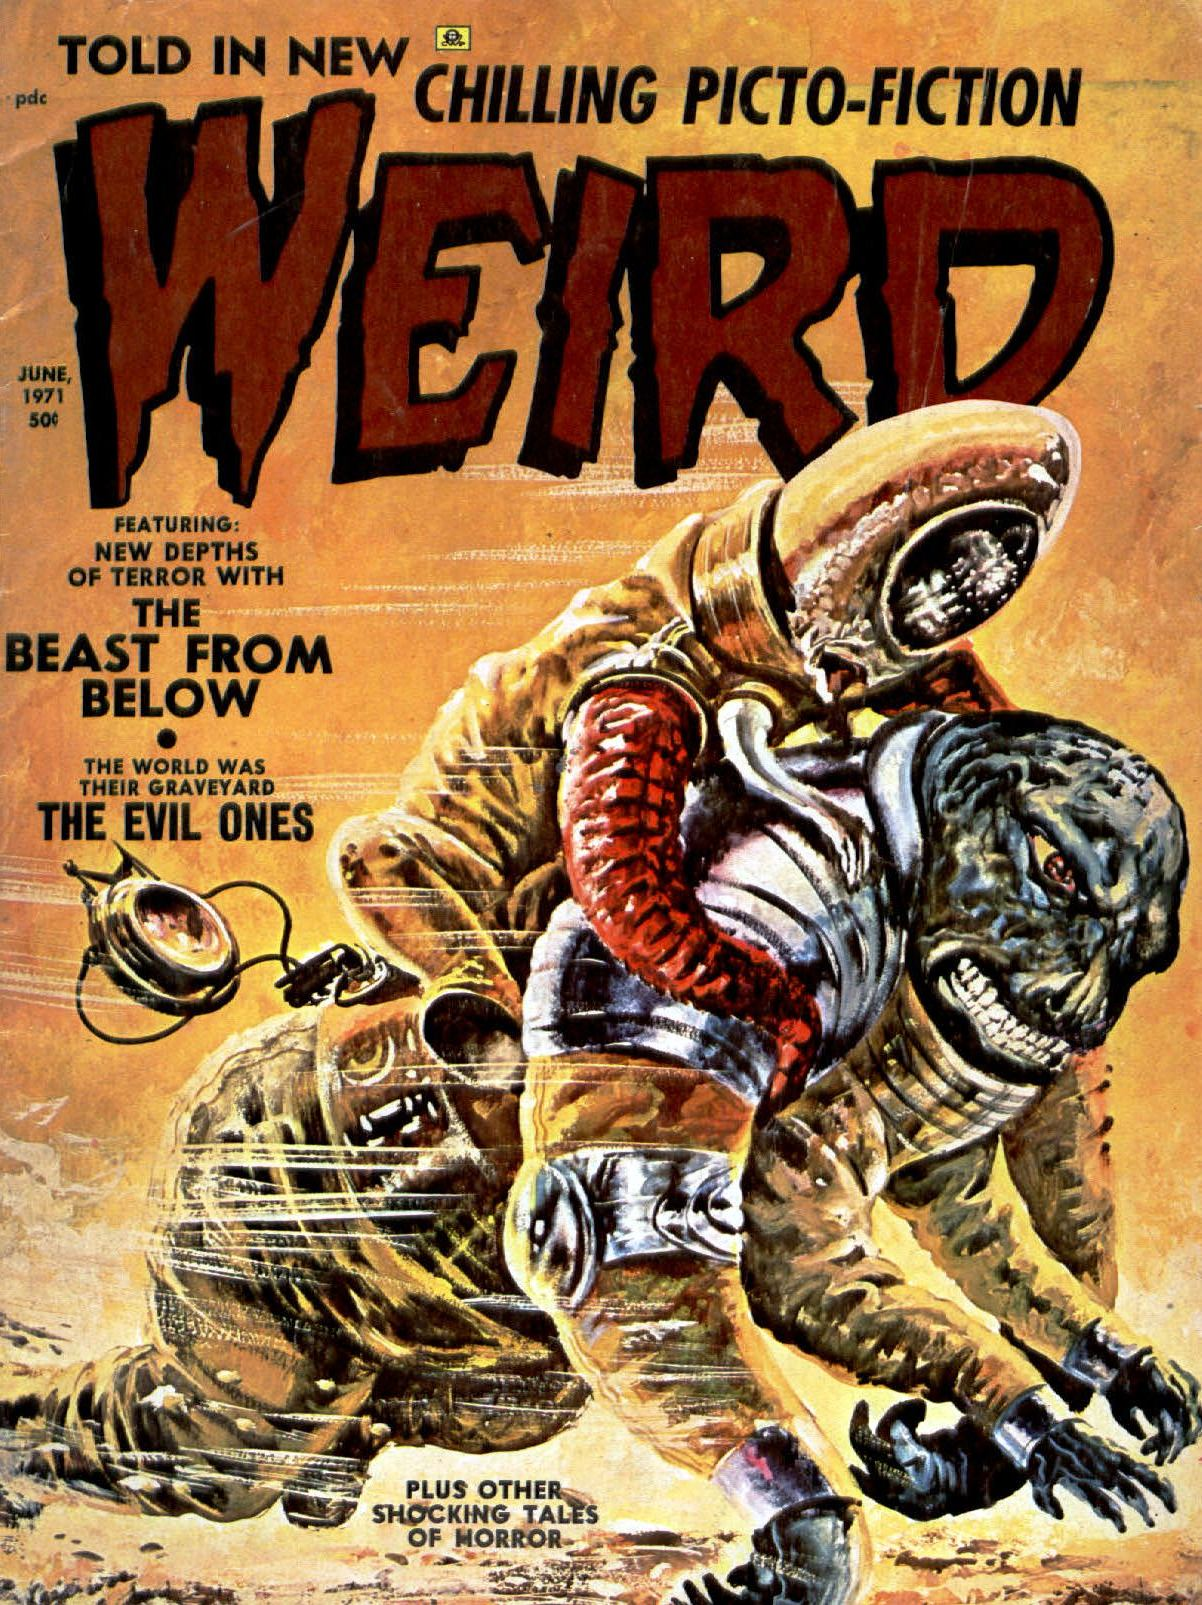 Weird Vol. 05 #3 (Eerie Publications, 1971)